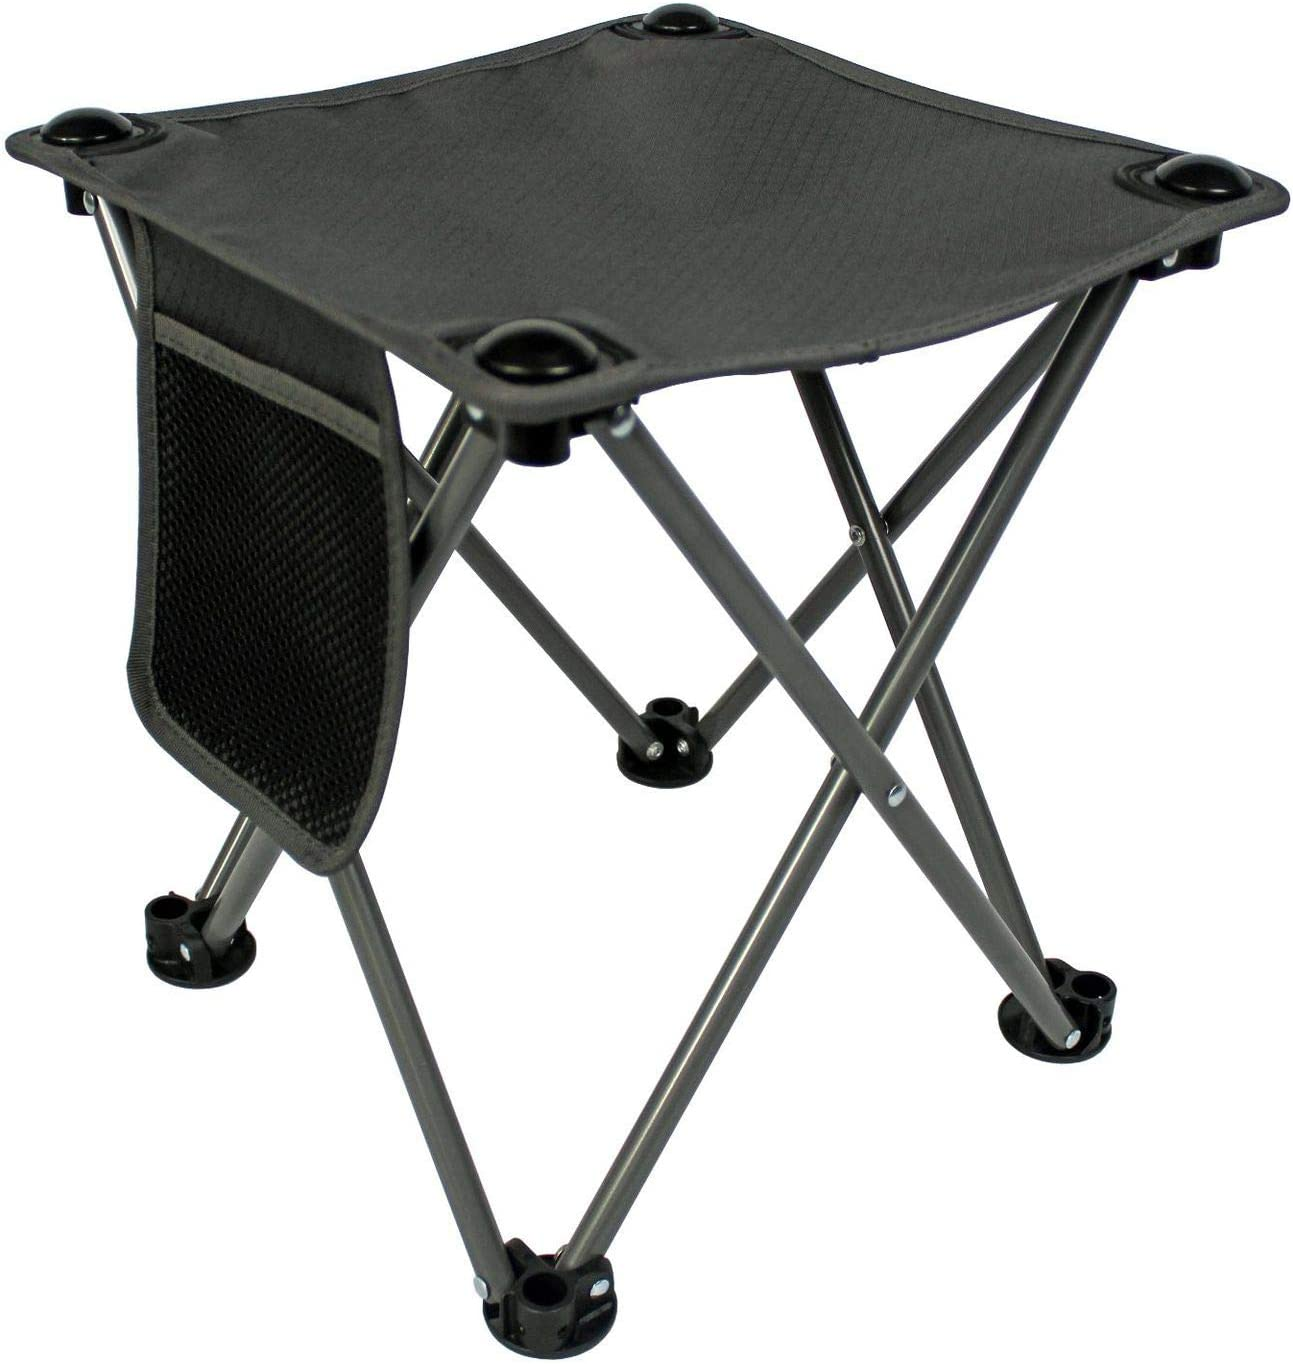 Tebery Folding Stool Fishing Stool Portable Camping Stool with Carry Bag for Travel Hiking Gardening Picnic Beach BBQ Outdoor Activities